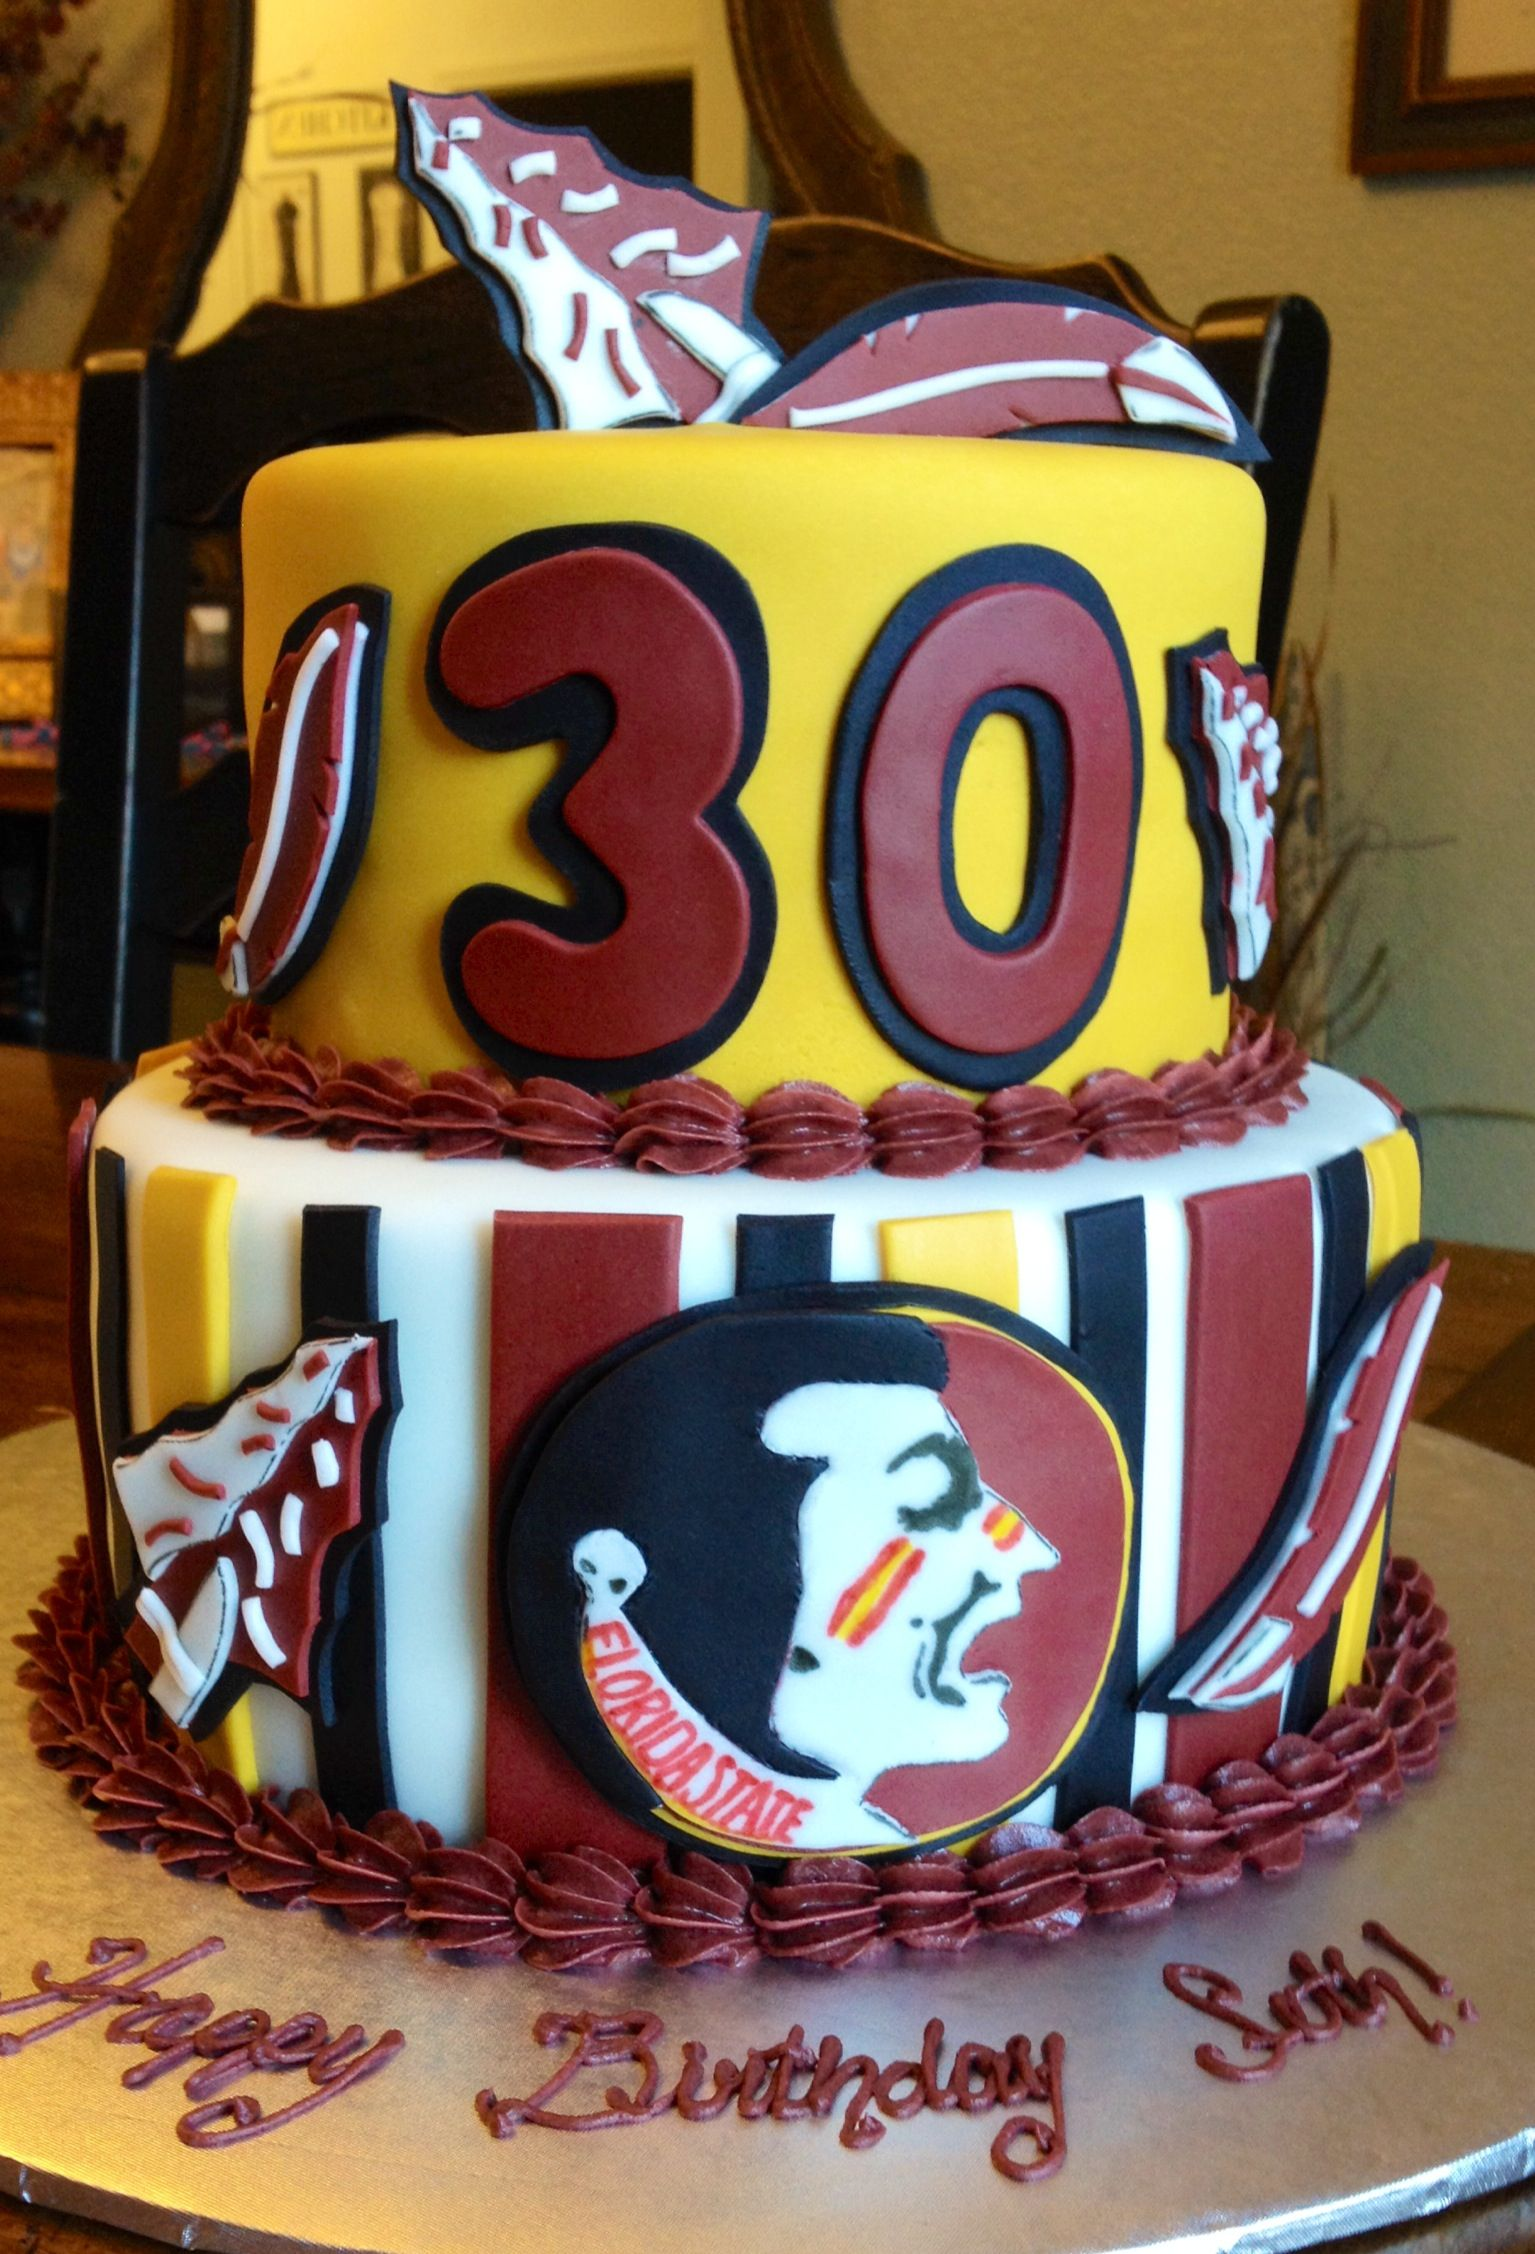 That Is A Phenomenal Fsu Cake Love My Noles Garnet And Gold For